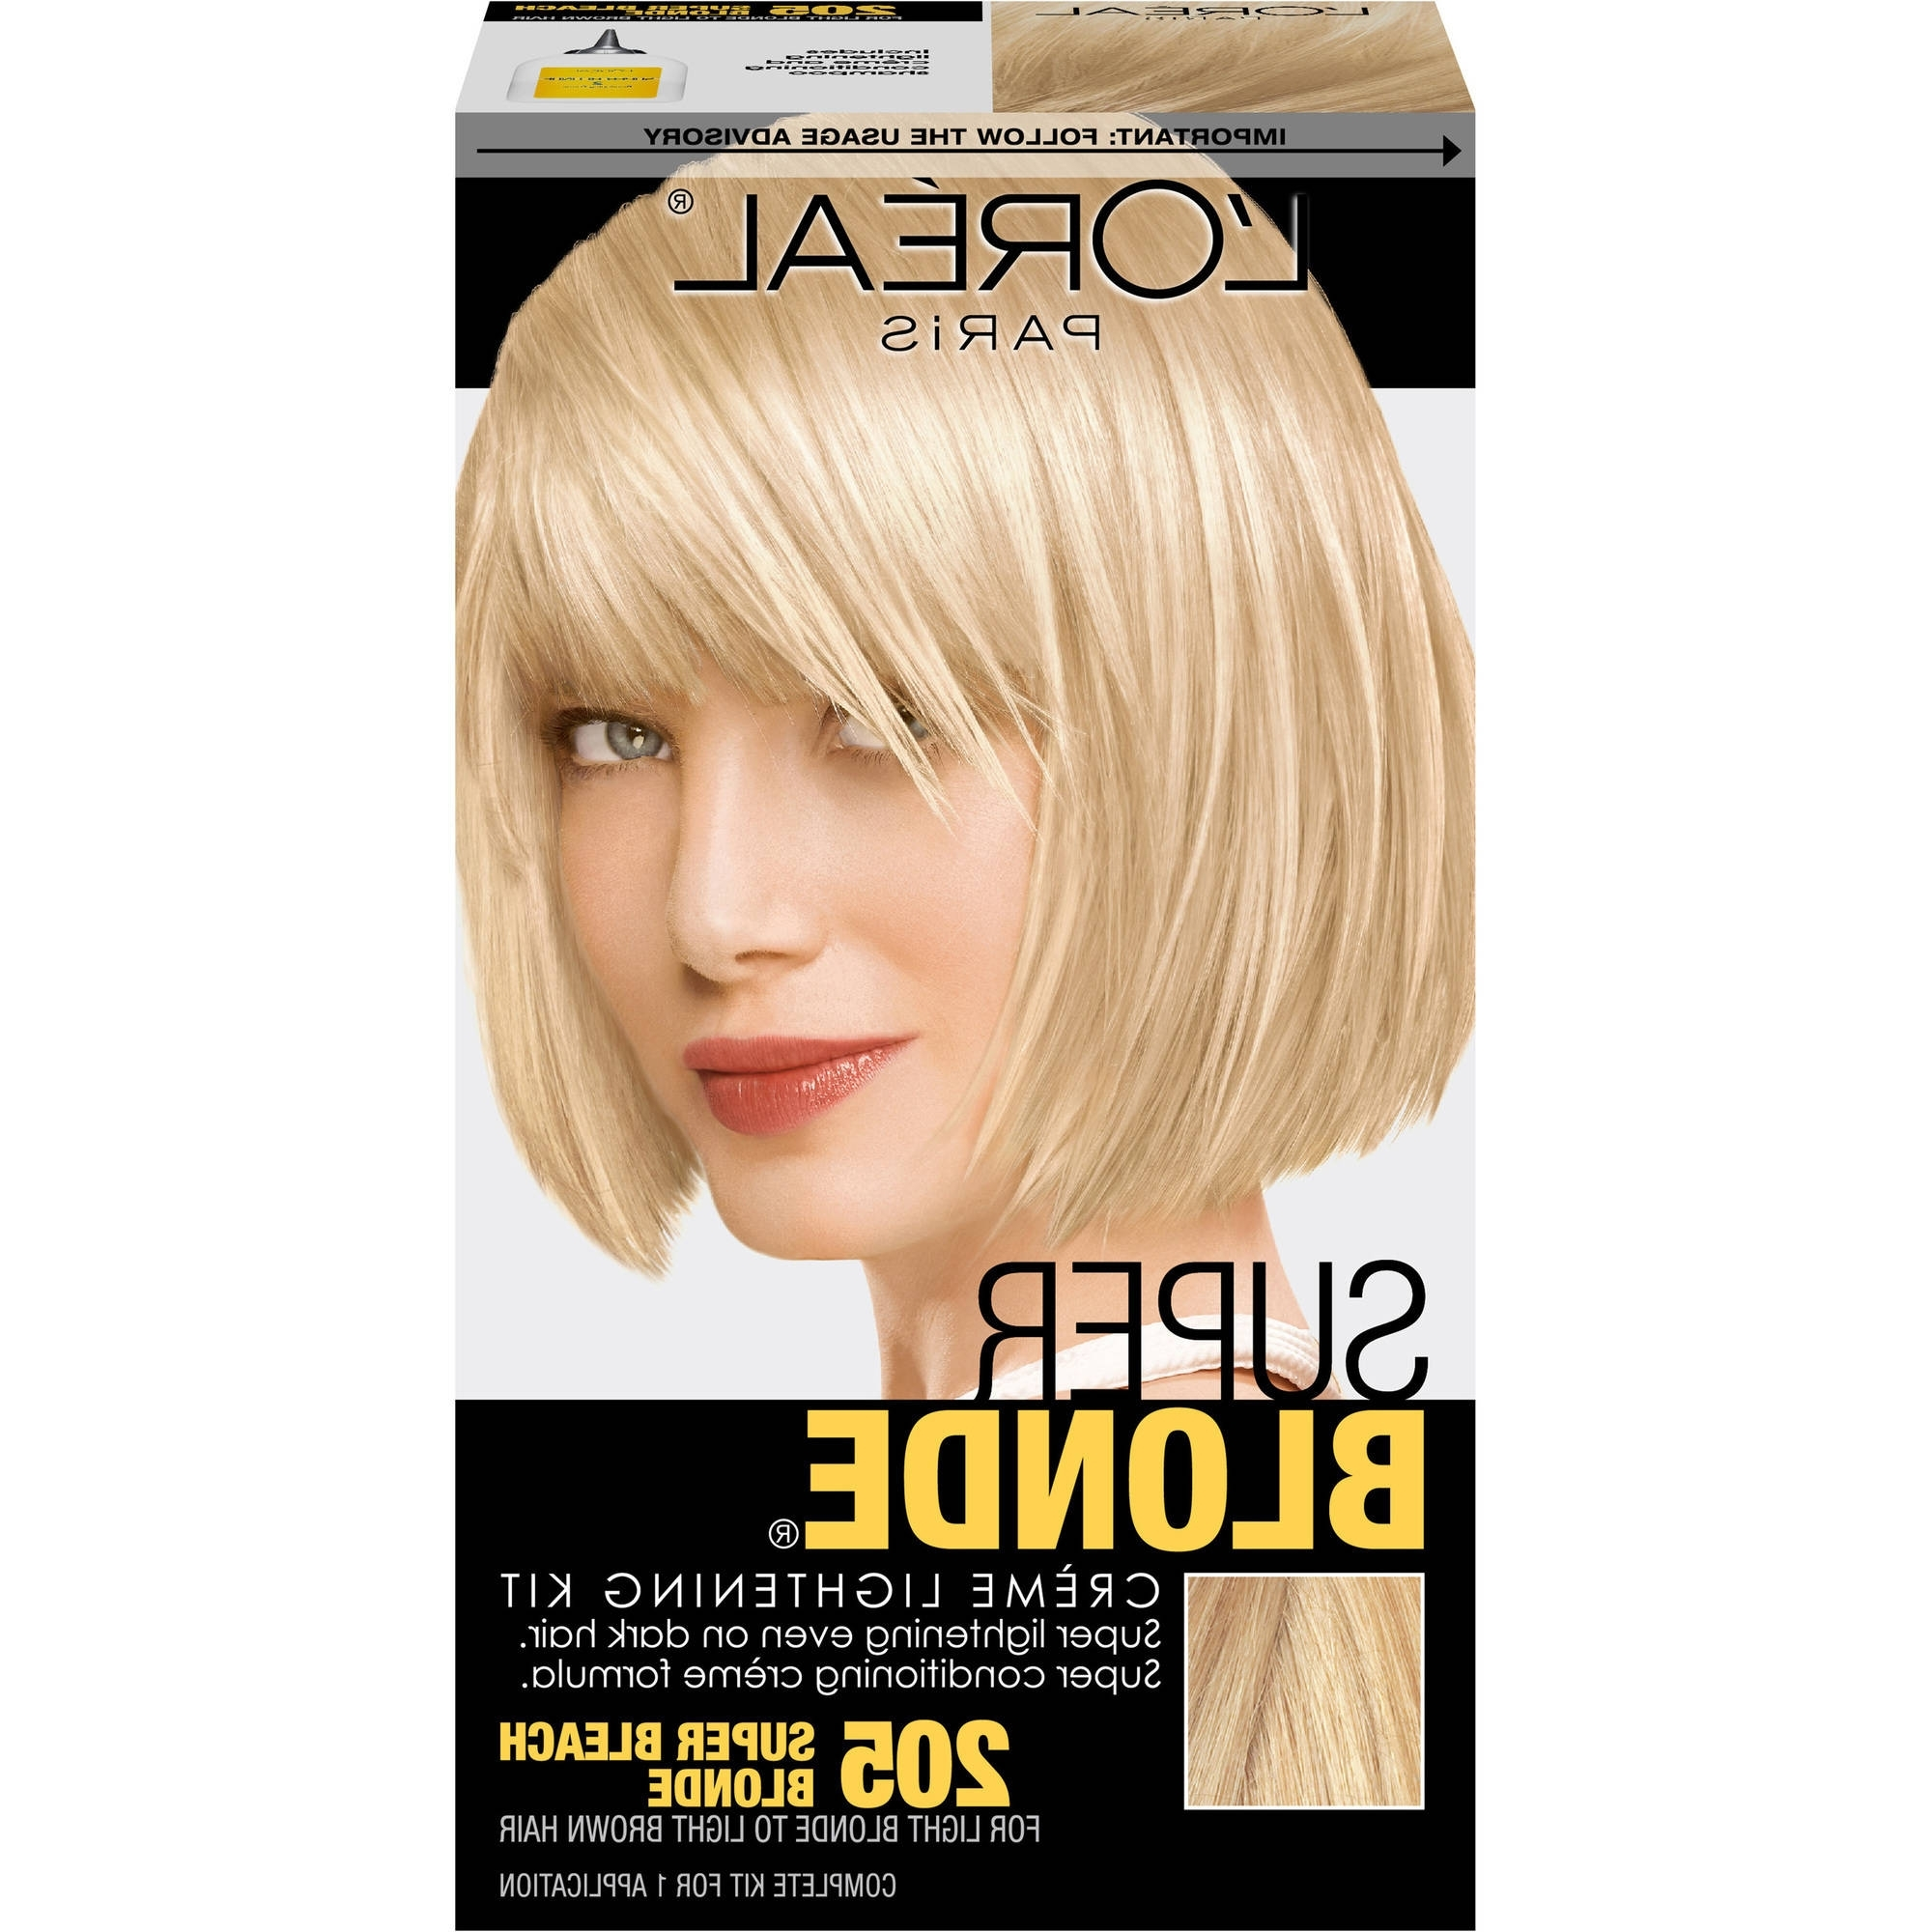 Favorite Bi Color Blonde With Bangs With L'oreal Paris Super Blonde Creme Lightening Kit, Super Bleach Blonde (View 6 of 20)